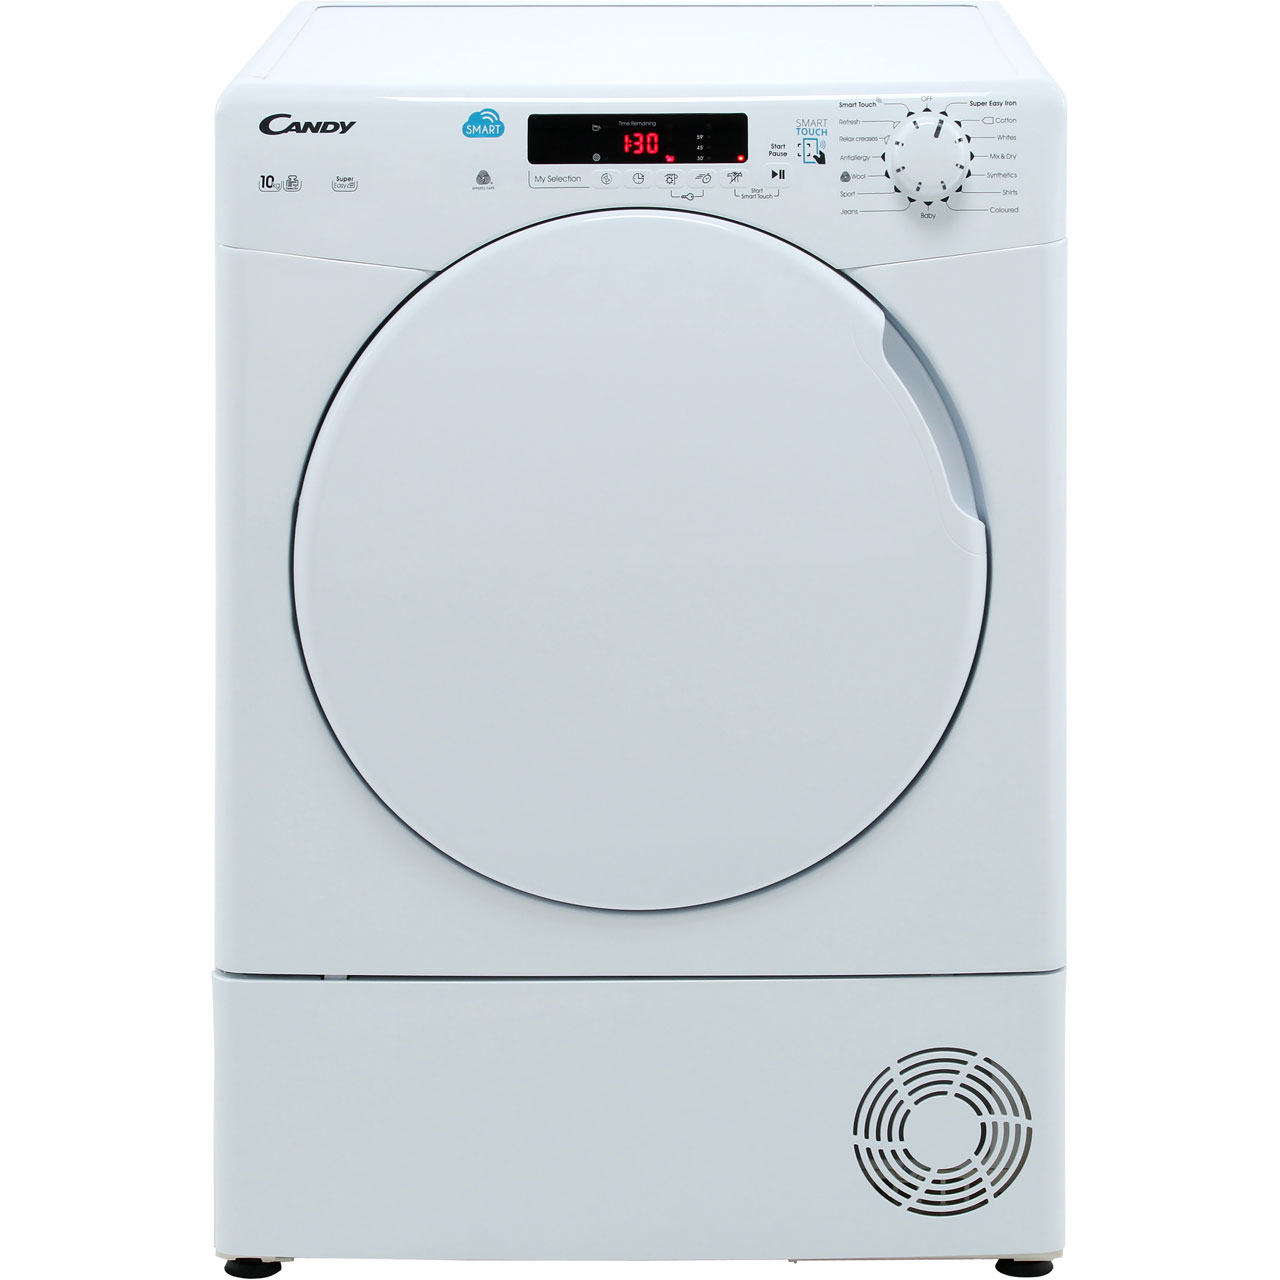 Candy Smart 10Kg Condenser Tumble Dryer - White - B Rated